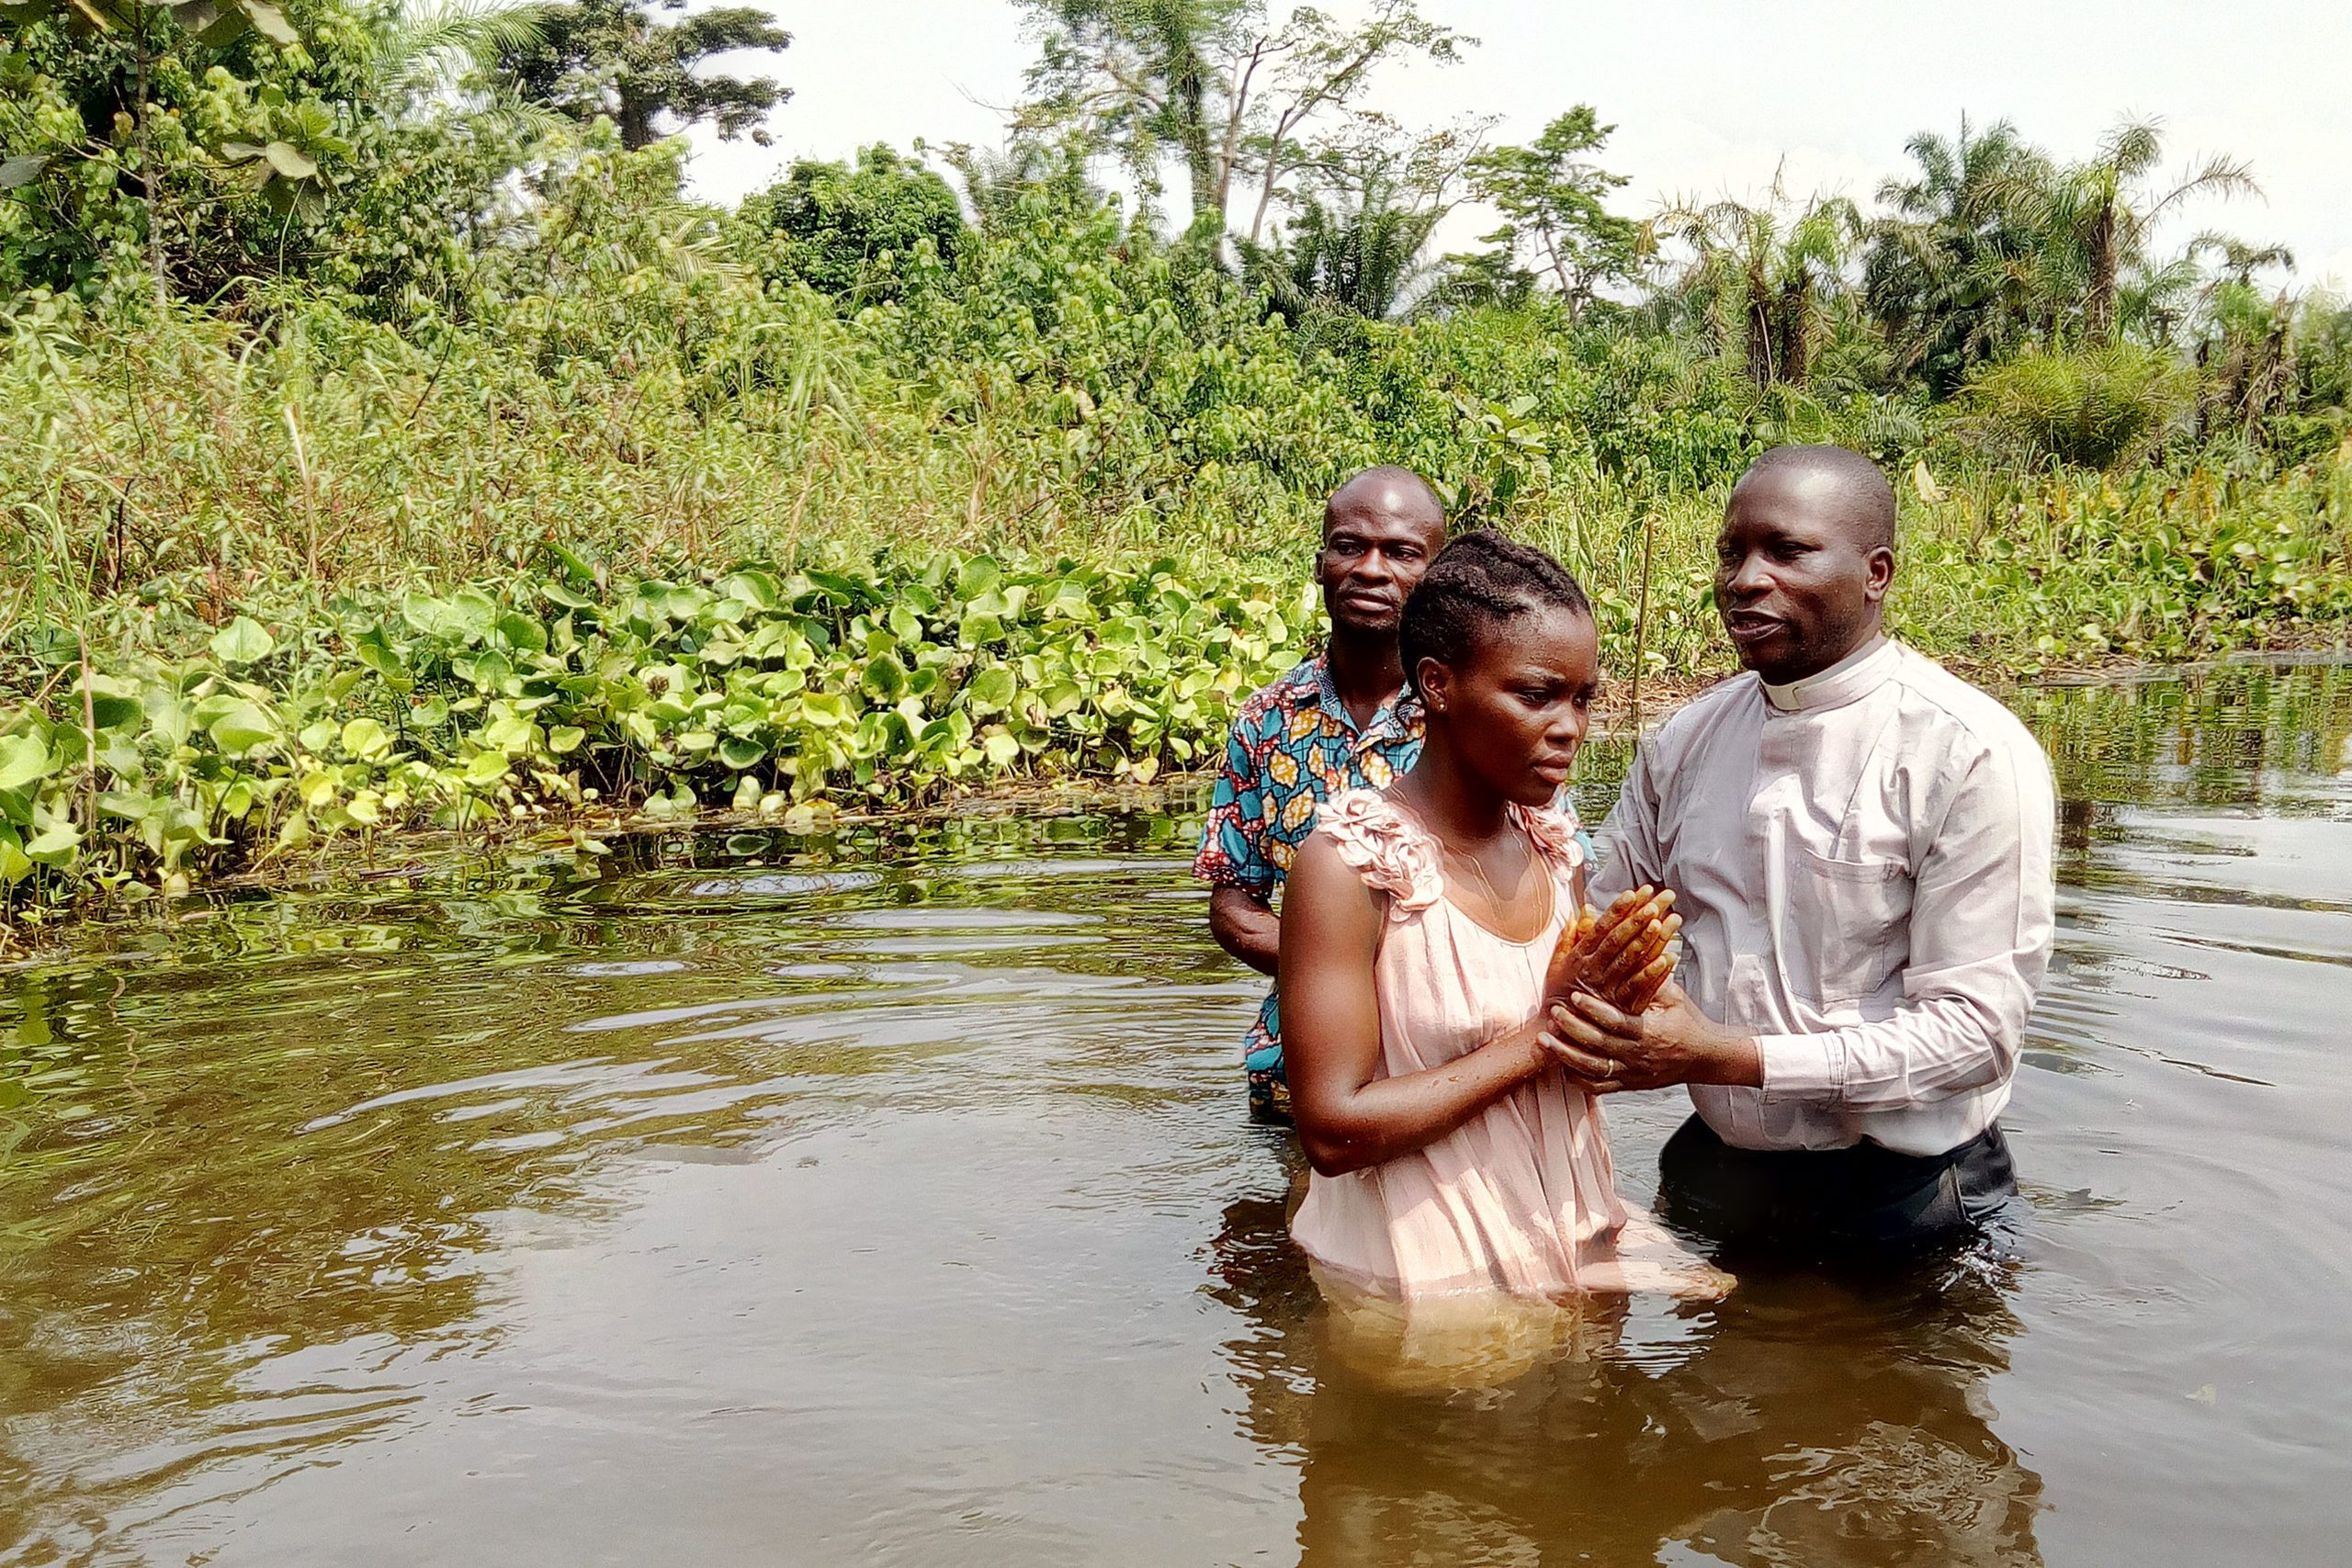 A woman is baptized in the Democratic Republic of Congo